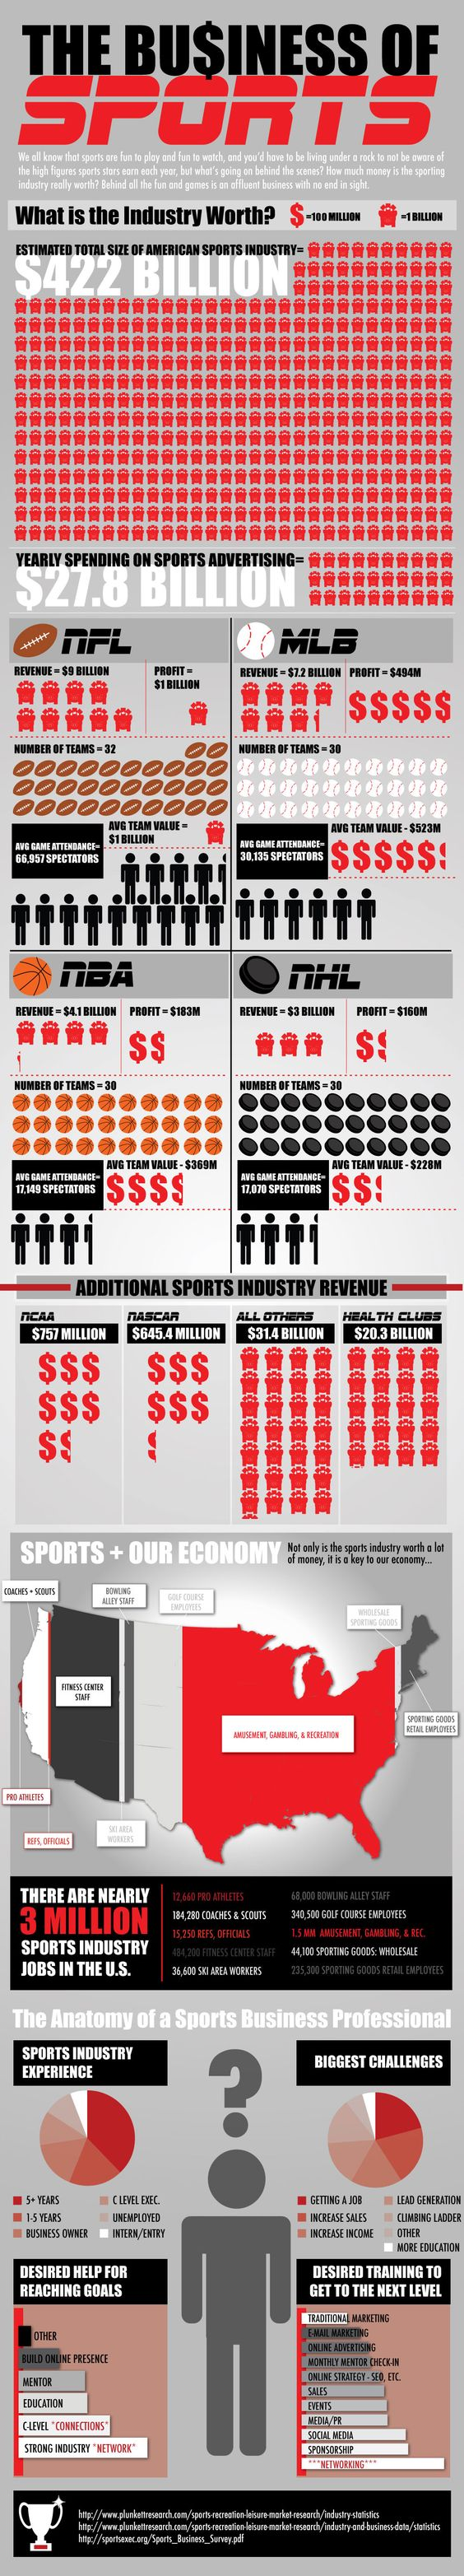 For activities considered non-essential to society, the sports industry is a thriving and lucrative business. At an estimated worth of $422 billion, the sports industry is a significant sector of the American economy.